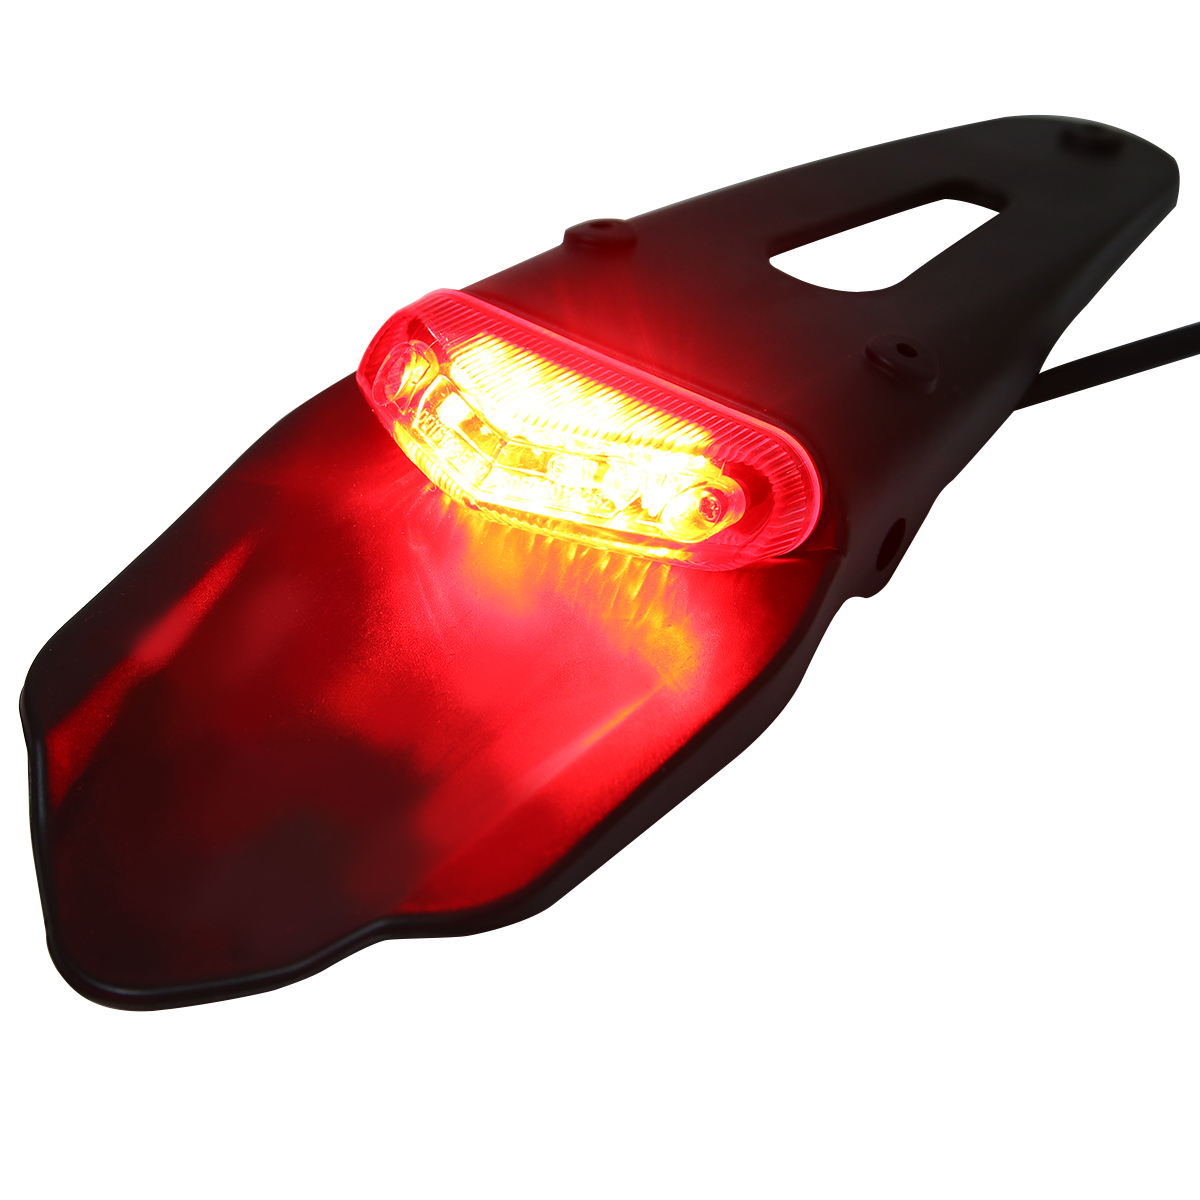 Image 3 - 1PC Motorcycle Off road Rear Fender LED Stop Tail Light For Enduro Trials Trailbikes XR400 For Yamaha WR250/ 450 TTR250 TT600 RE